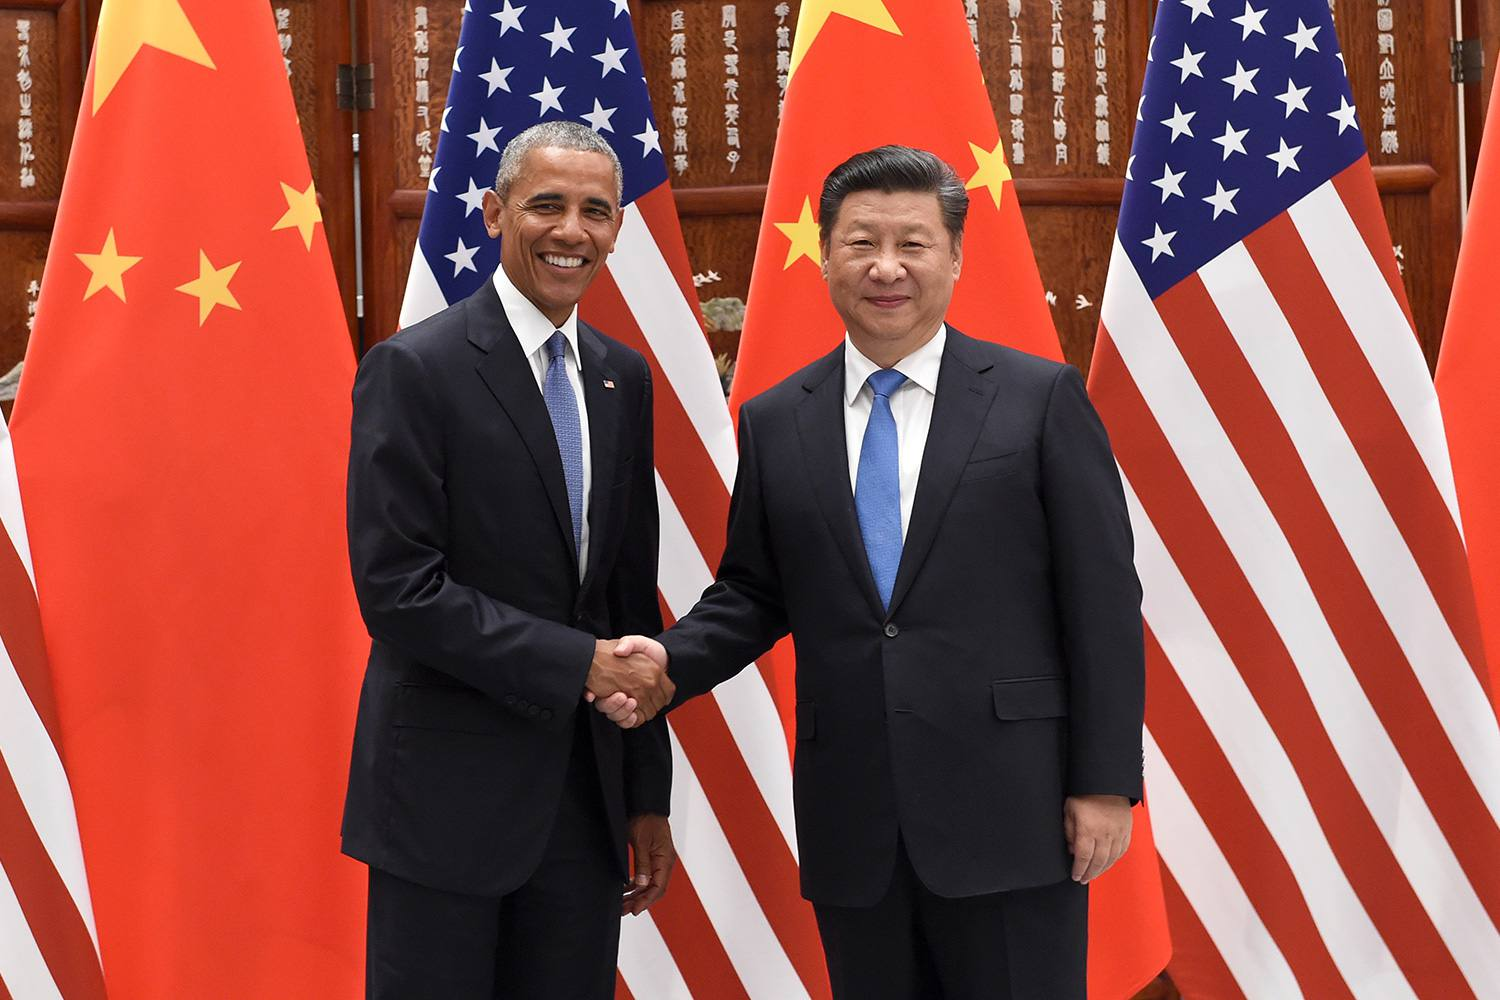 Chinese President Xi Jinping shakes hands with Barack Obama